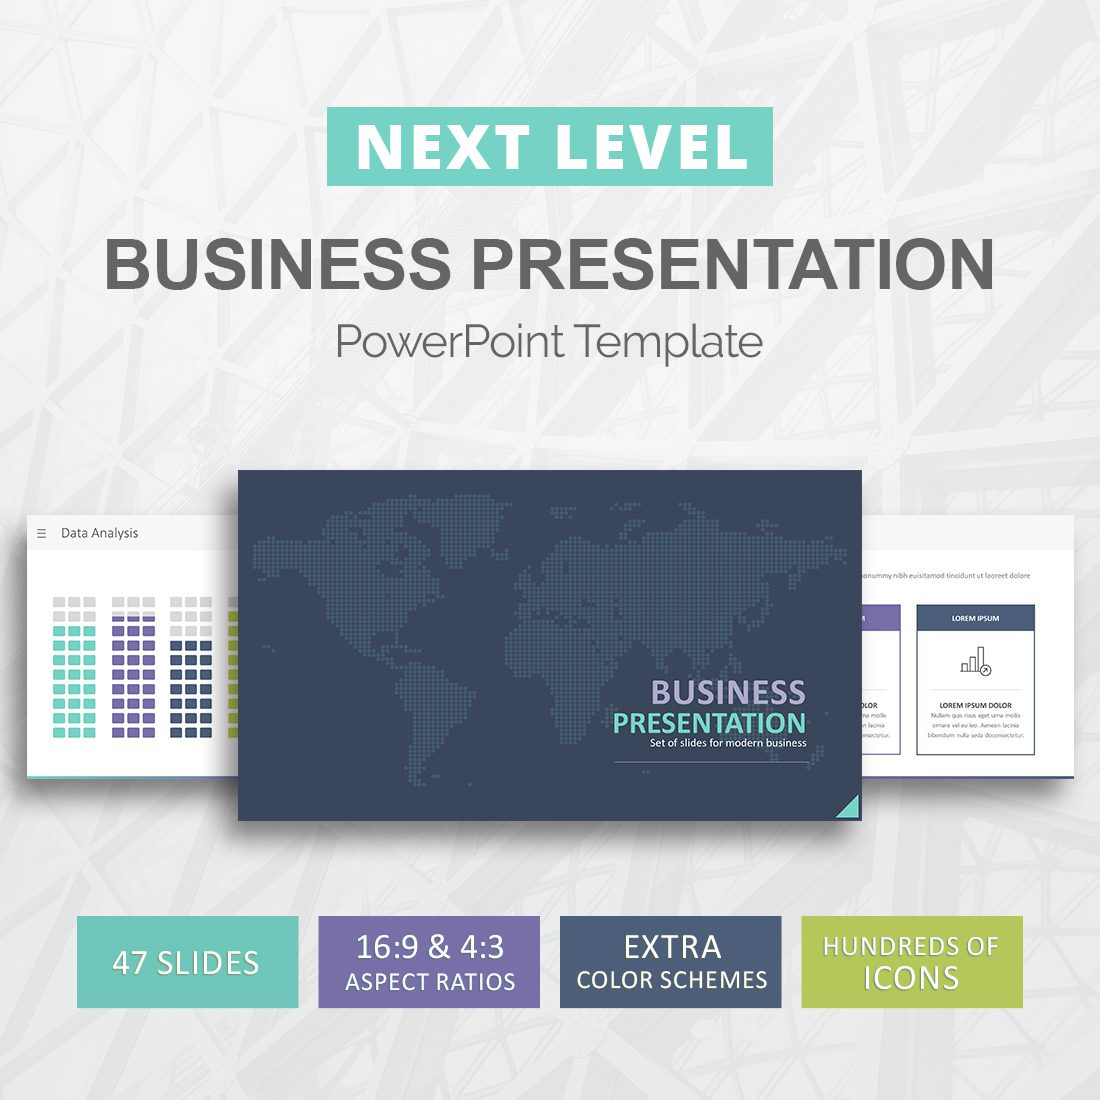 Presentation Business Powerpoint Templates: Business Presentation Template For PowerPoint